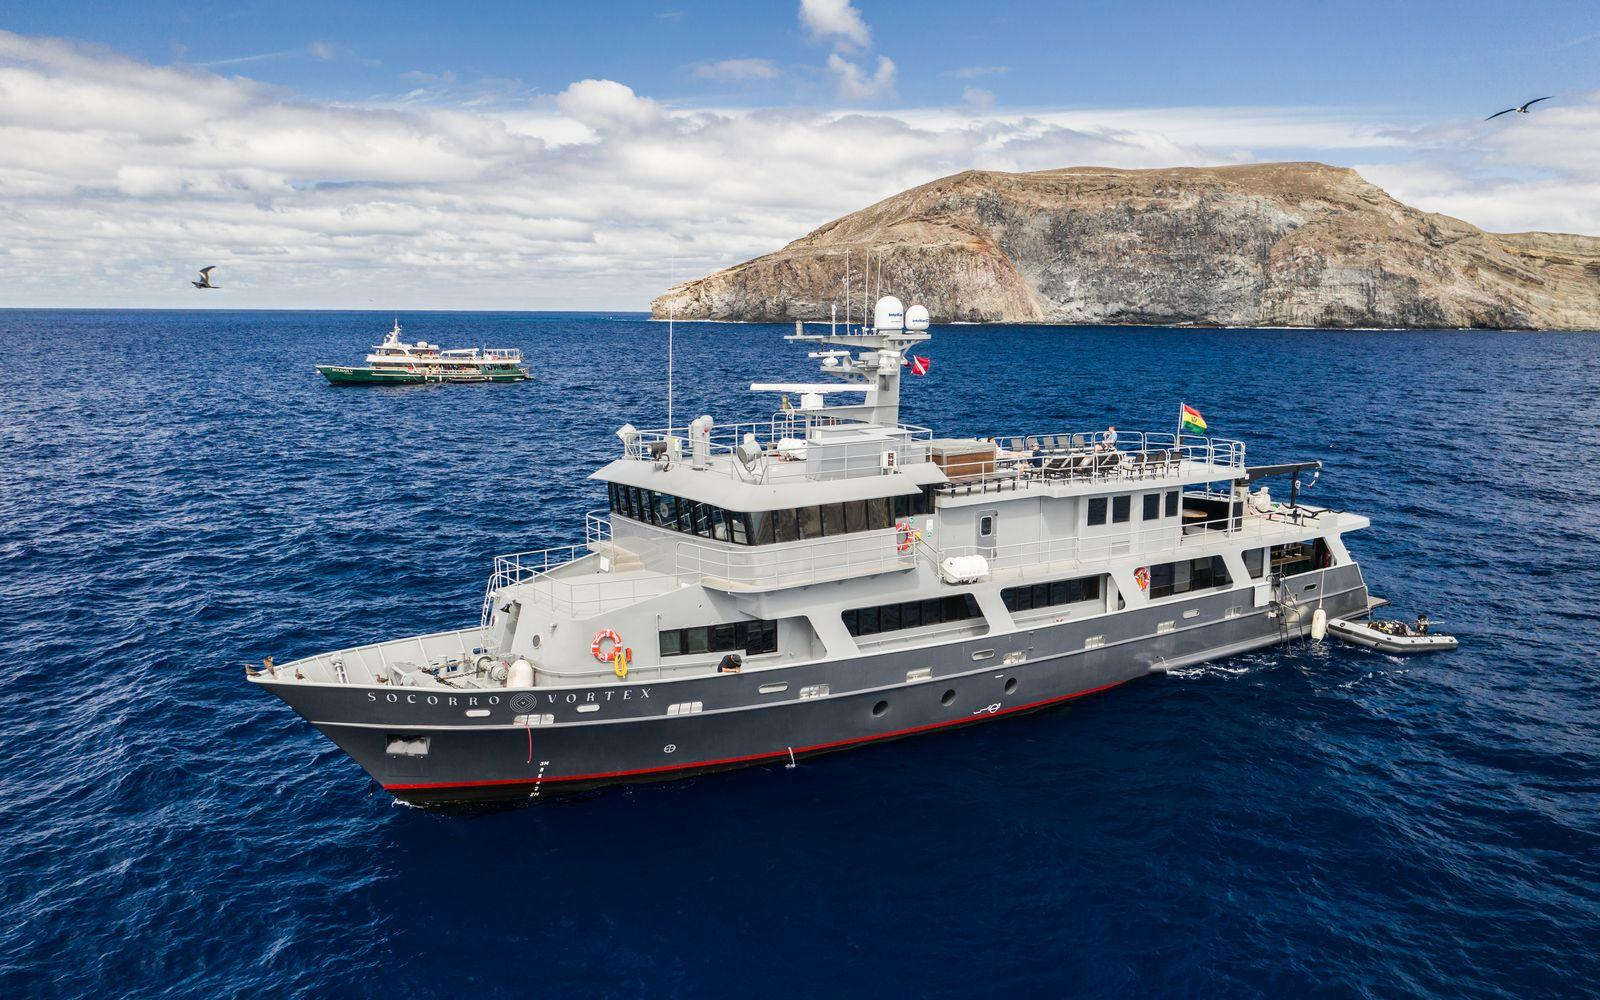 Is Vortex the No. 1 Luxury Scuba Diving Liveaboard? 5